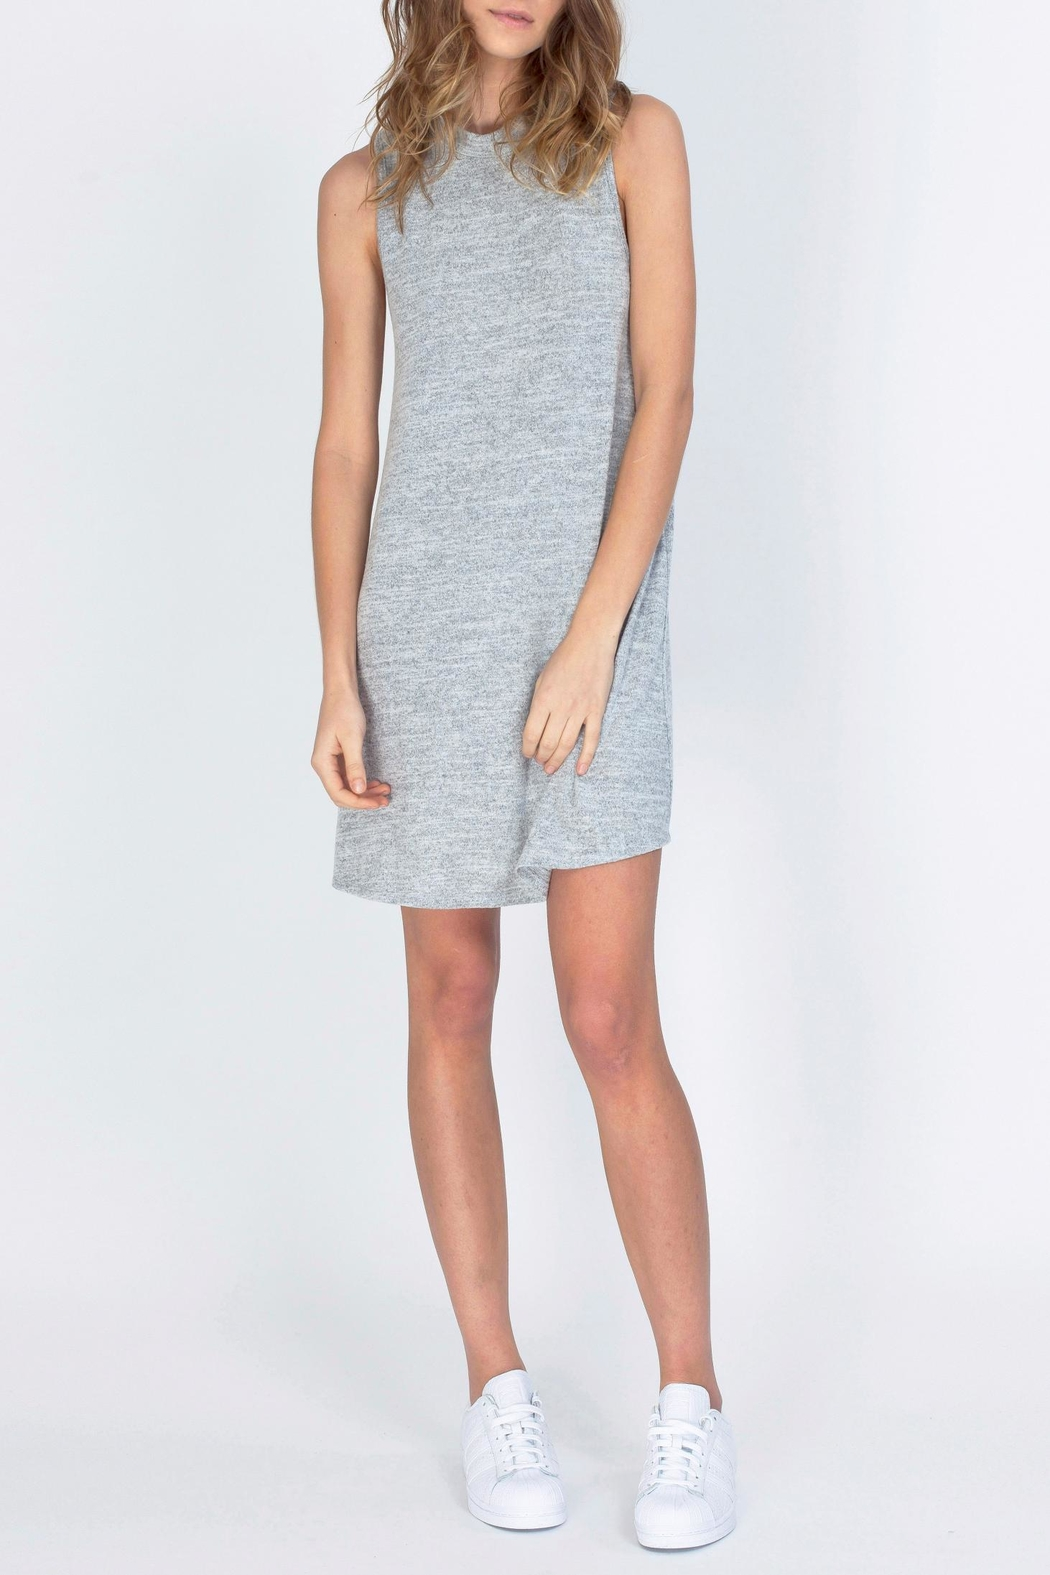 Gentle Fawn Motivate Shift Dress - Main Image